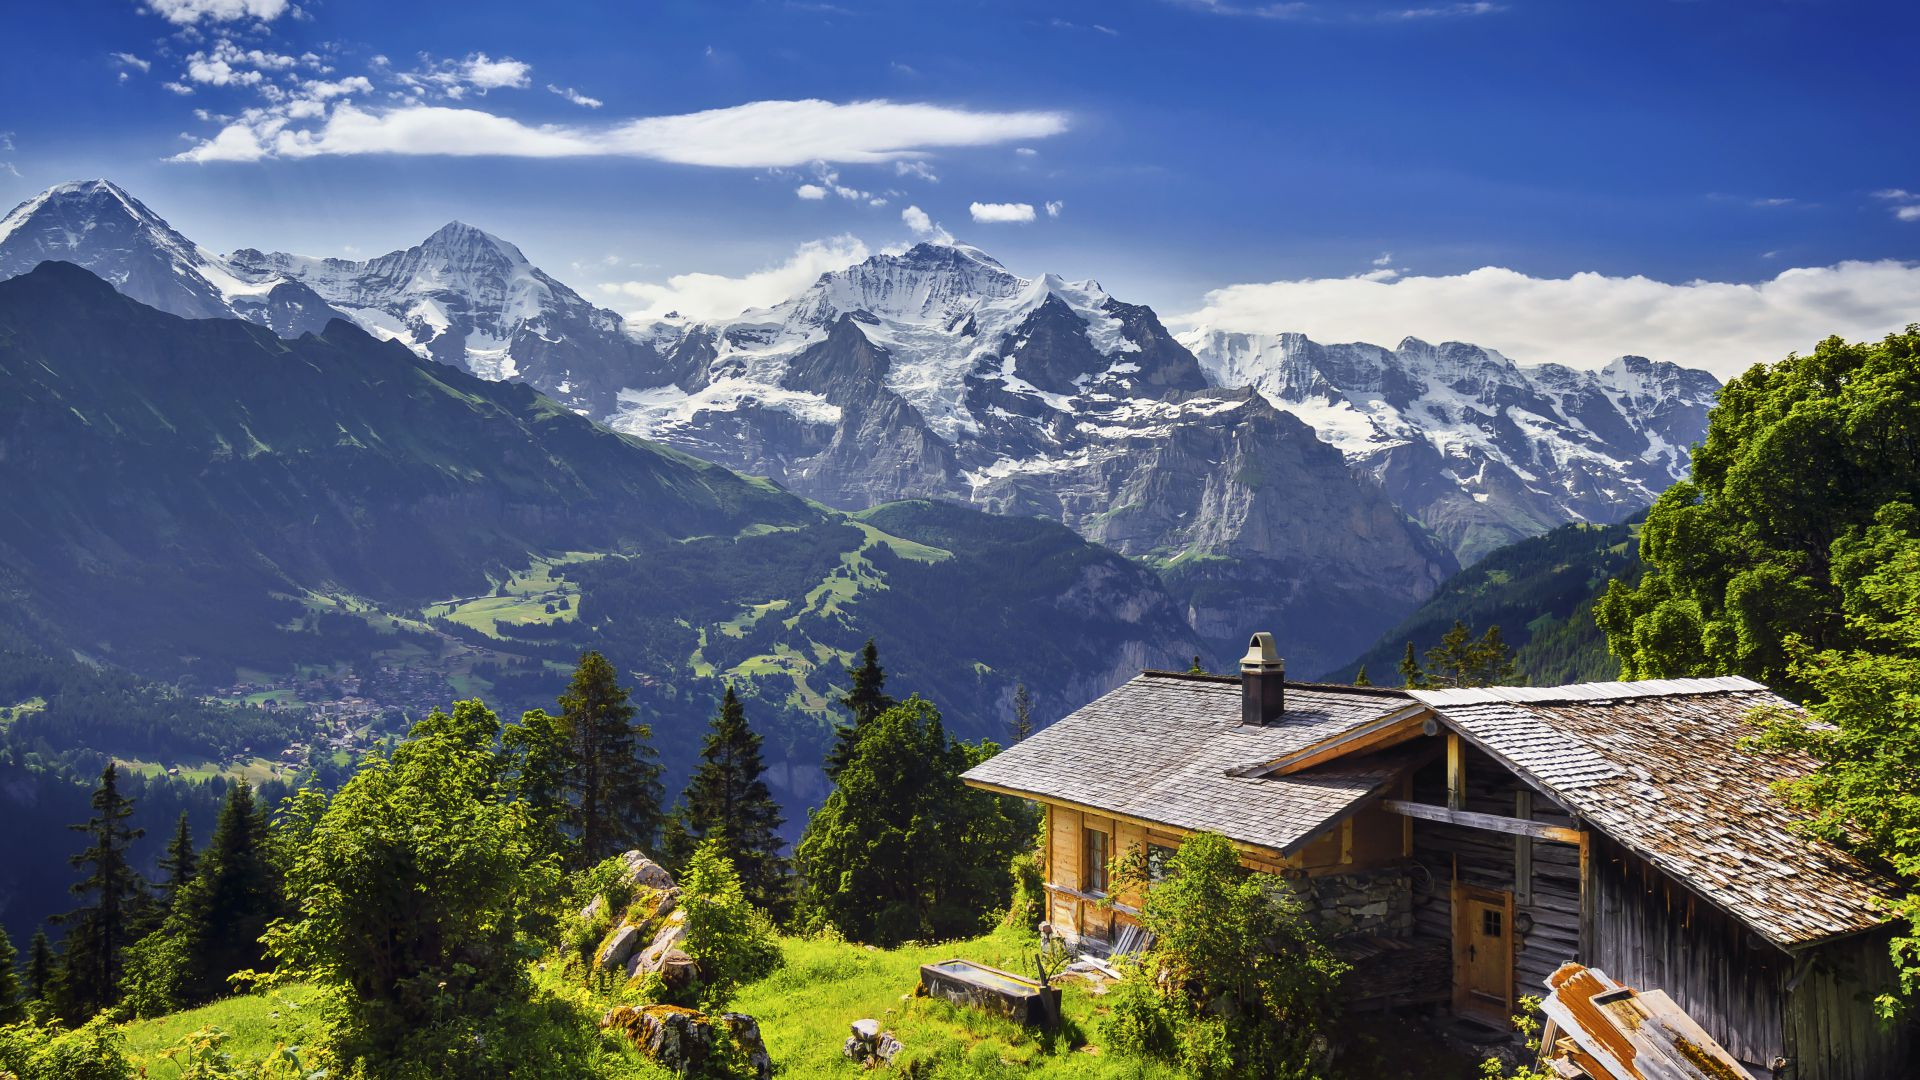 Wallpaper switzerland 5k 4k wallpaper 8k mountains sky house nature 5301 - Alpen dekoration ...